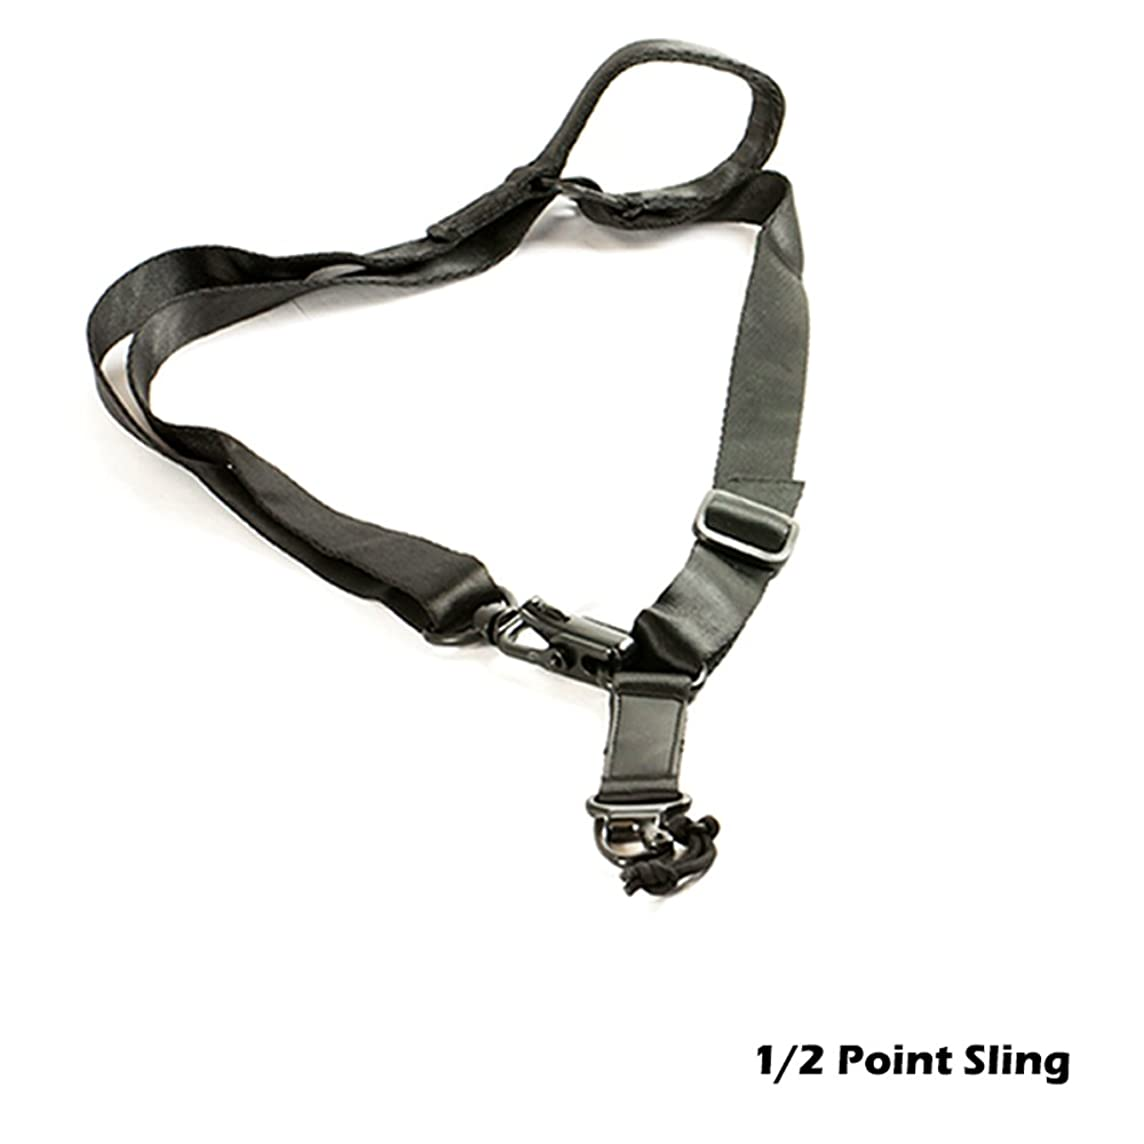 Hunter Select US Tactical Safety Two Points Outdoor Belt Carbine Sling Adjustable Strap, Quick Action Adjustment Systems